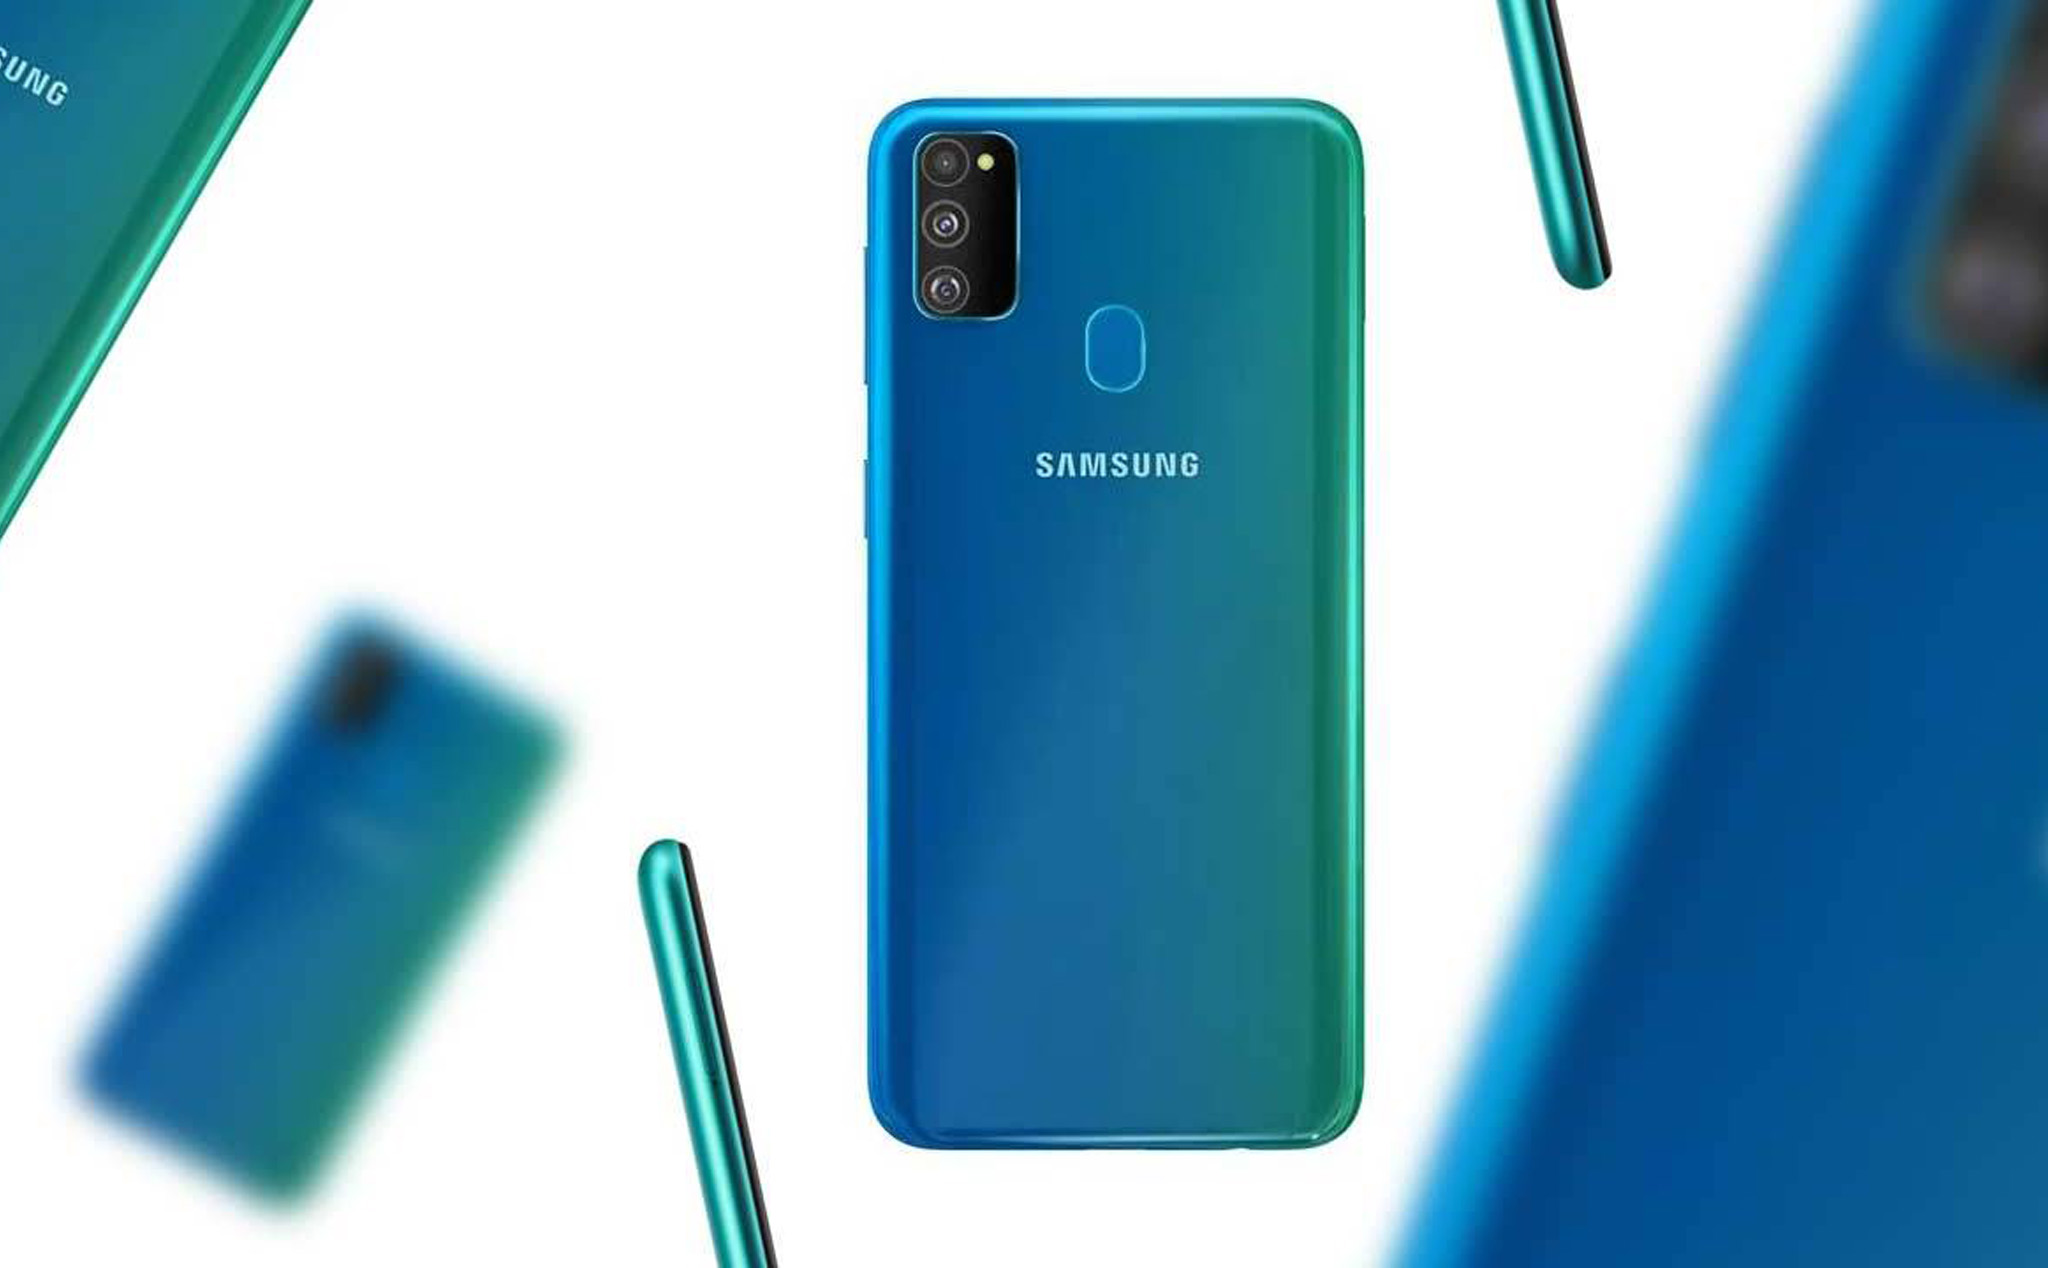 Samsung introduced the Galaxy M30s, an affordable 6000 mAh battery